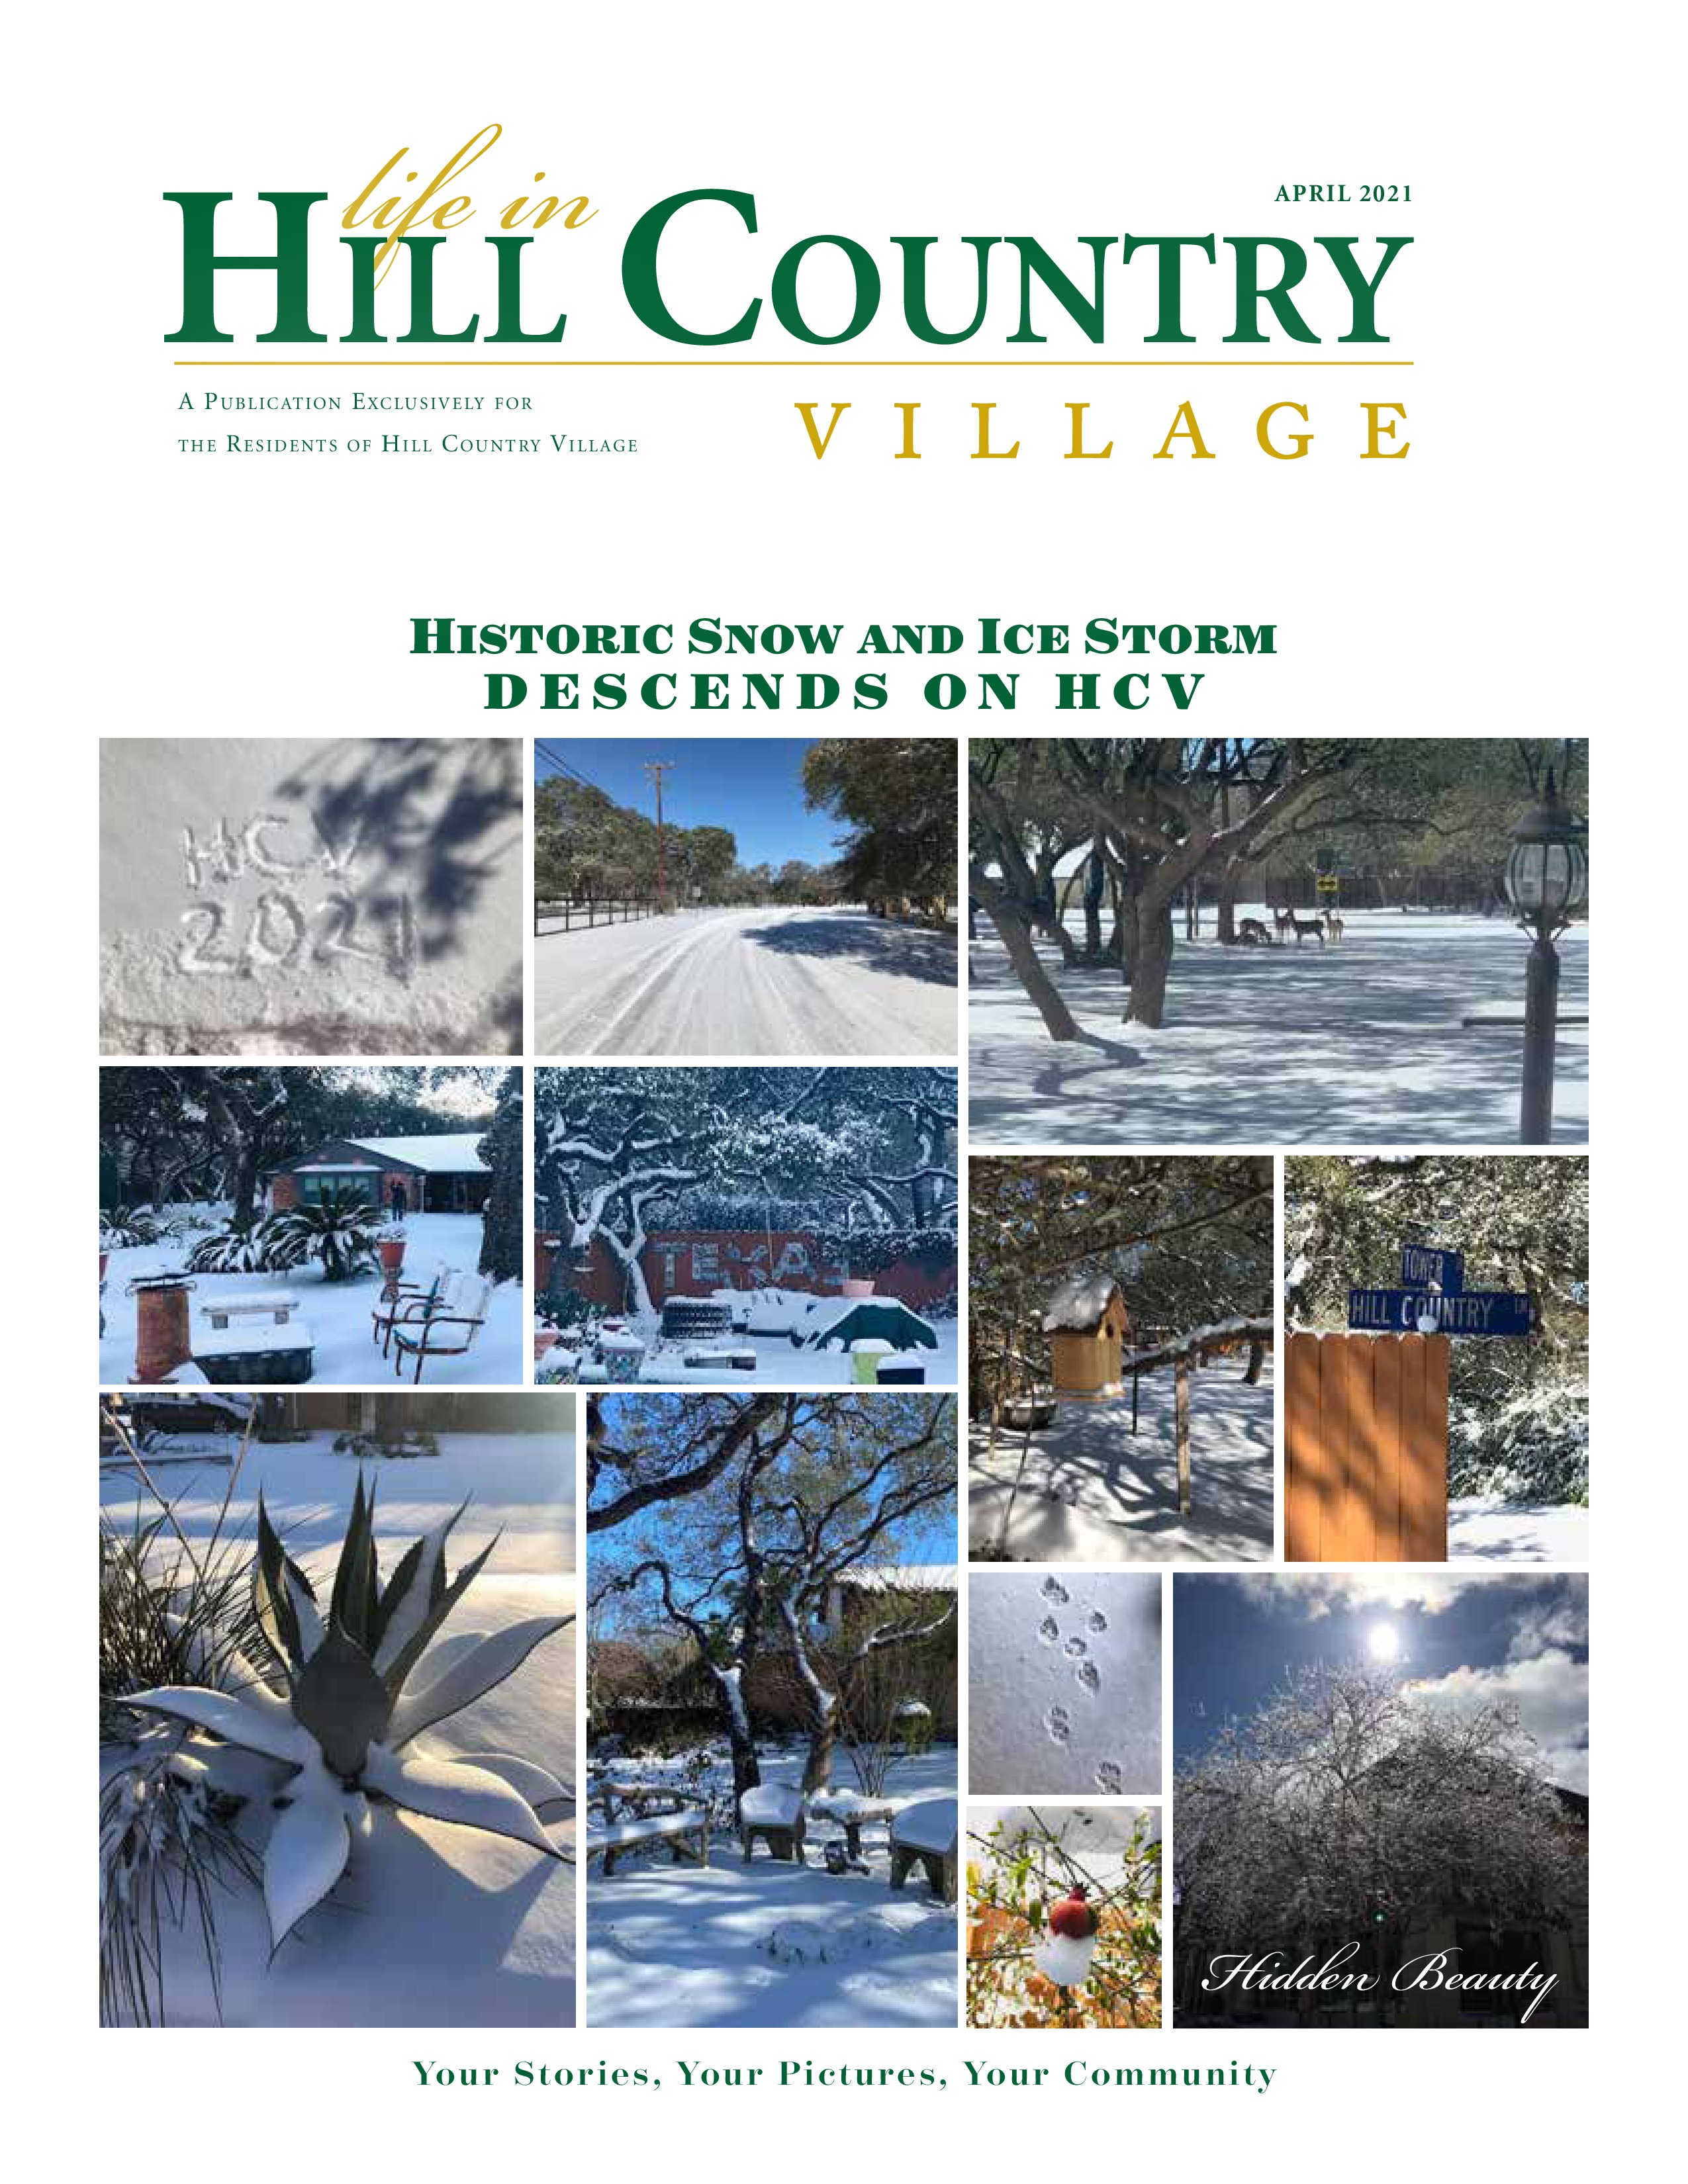 Life in Hill Country Village 2021-04-01